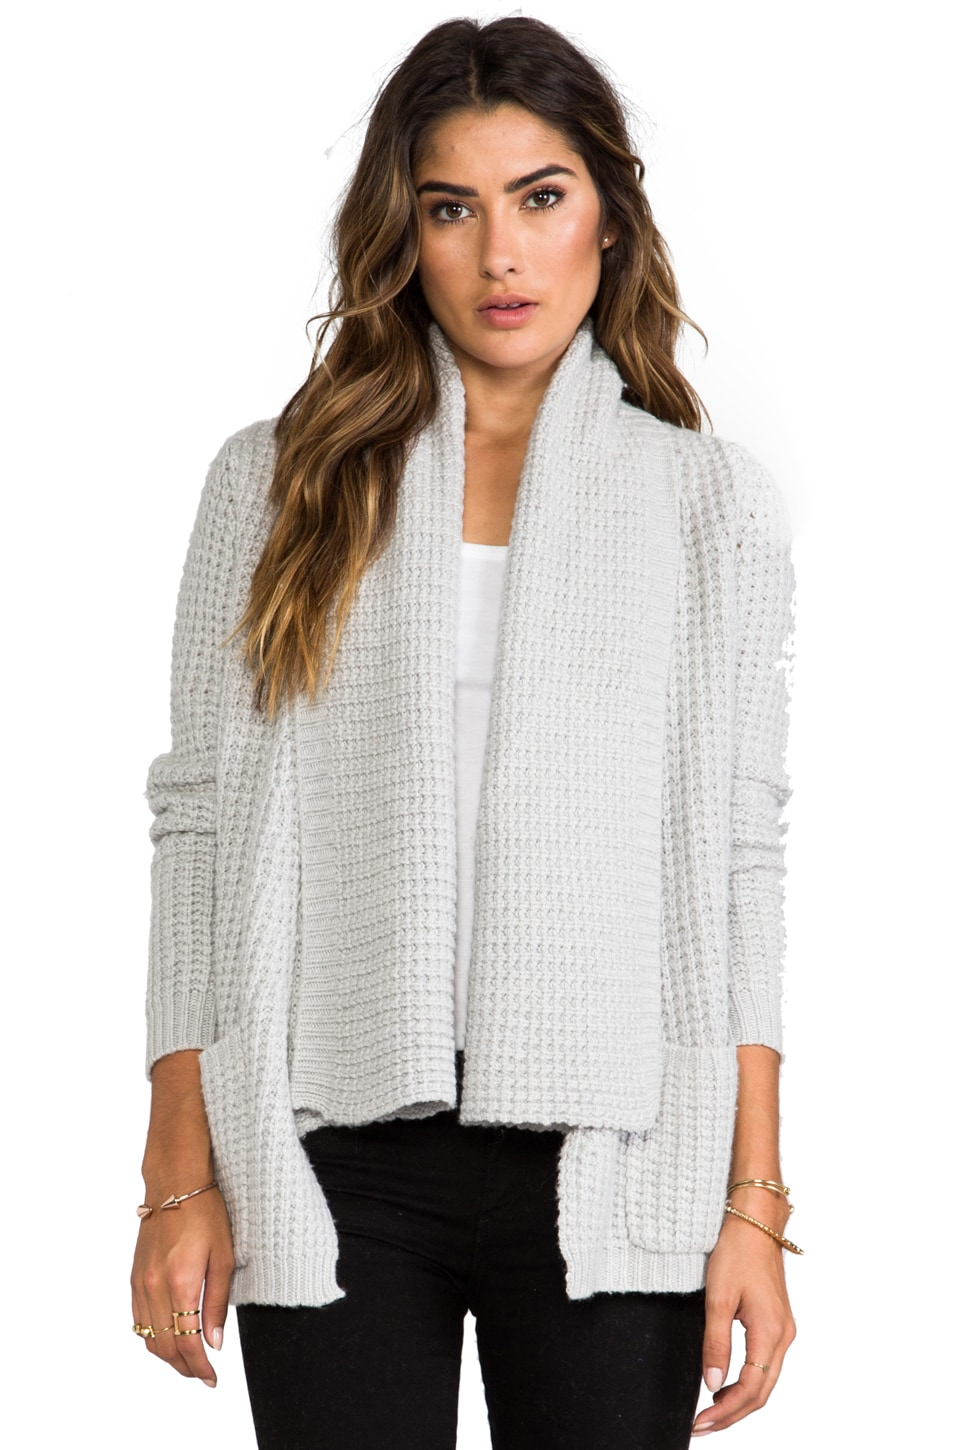 Autumn Cashmere Textured Drape Cardigan with Pockets in Frost